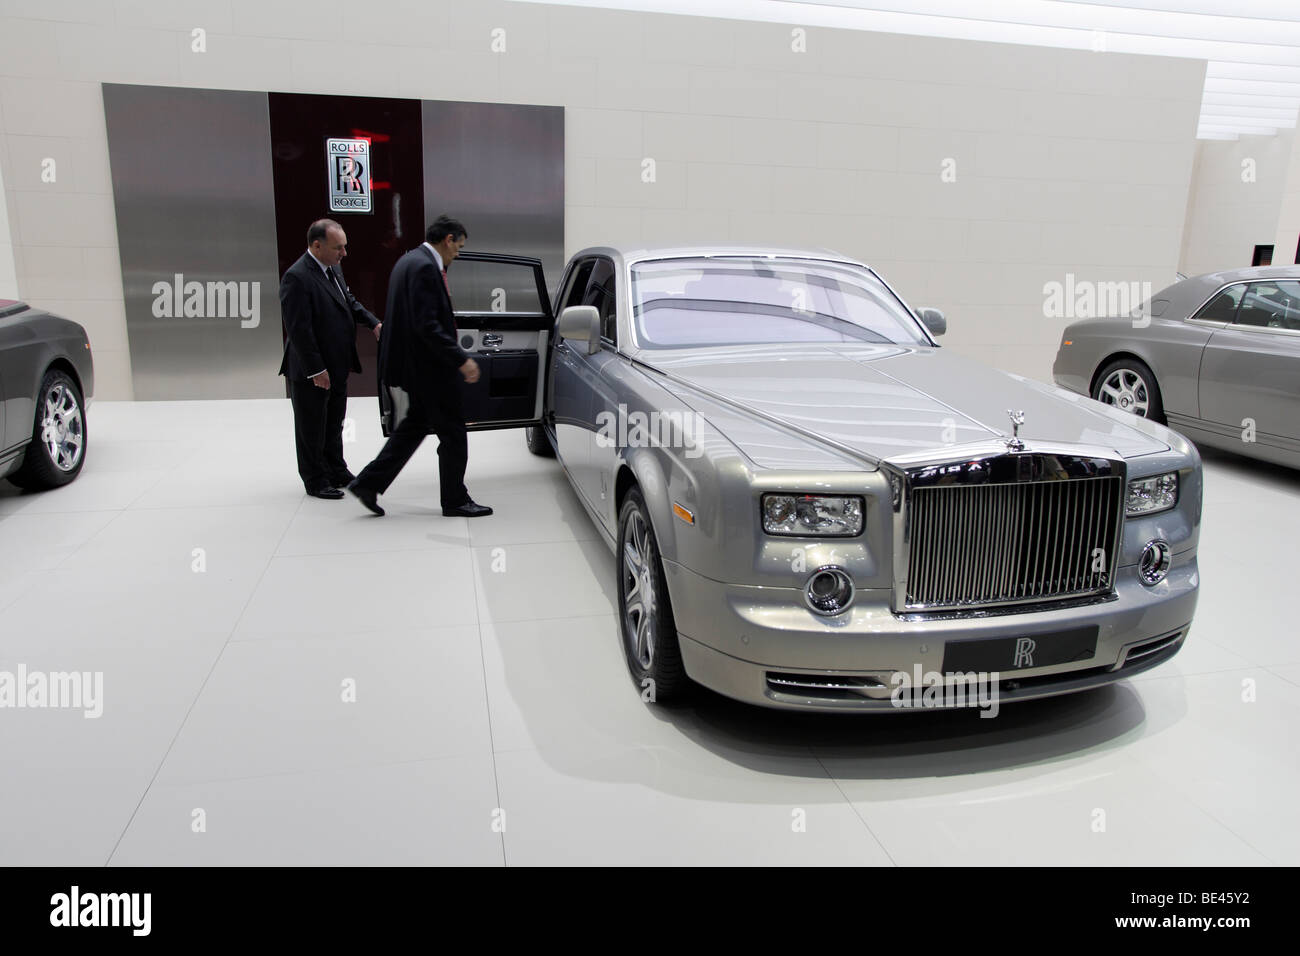 63th International Motor Show ( IAA ): presentation of the car manufacturer Rolls-Royce - Stock Image